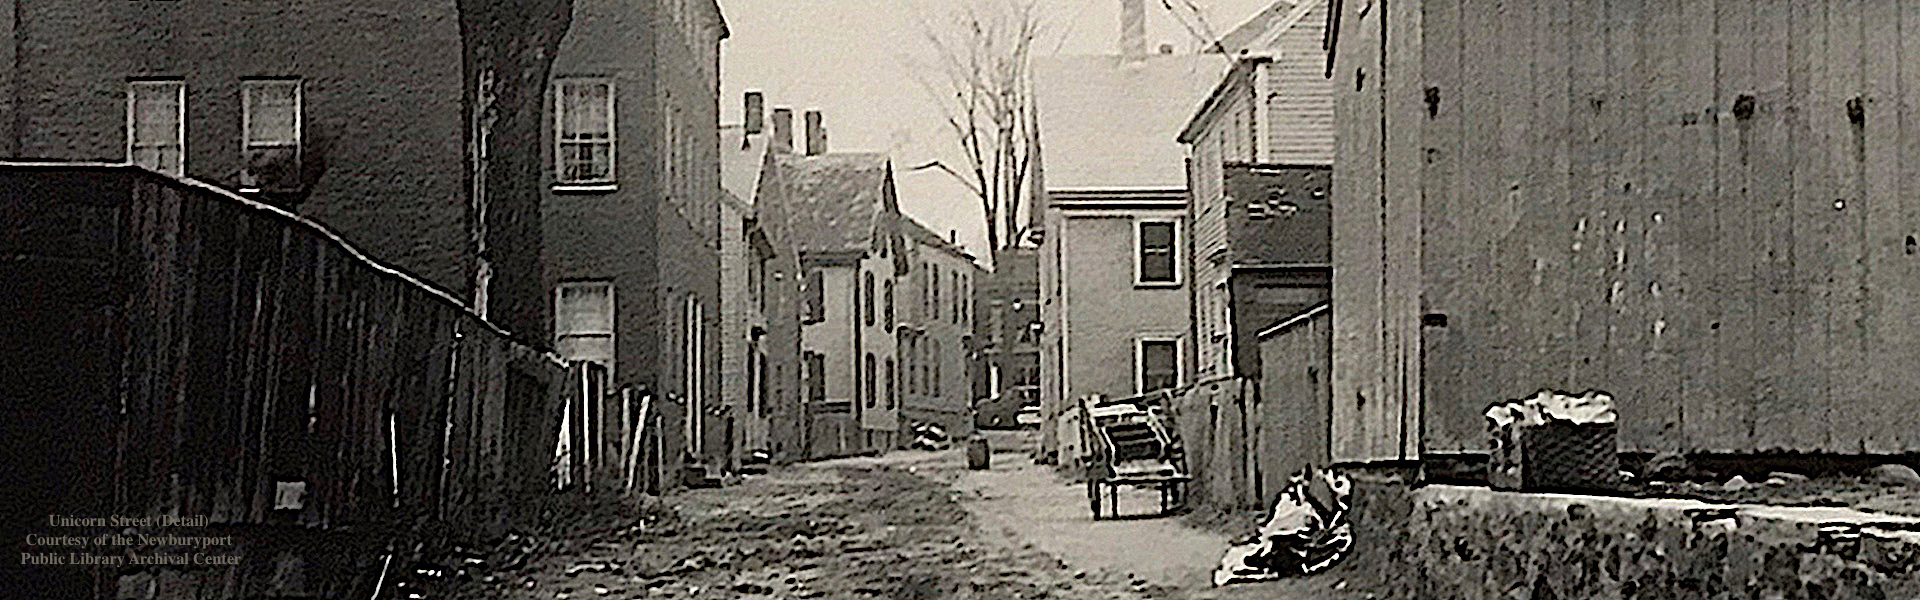 Unicorn Street Newburyport MA